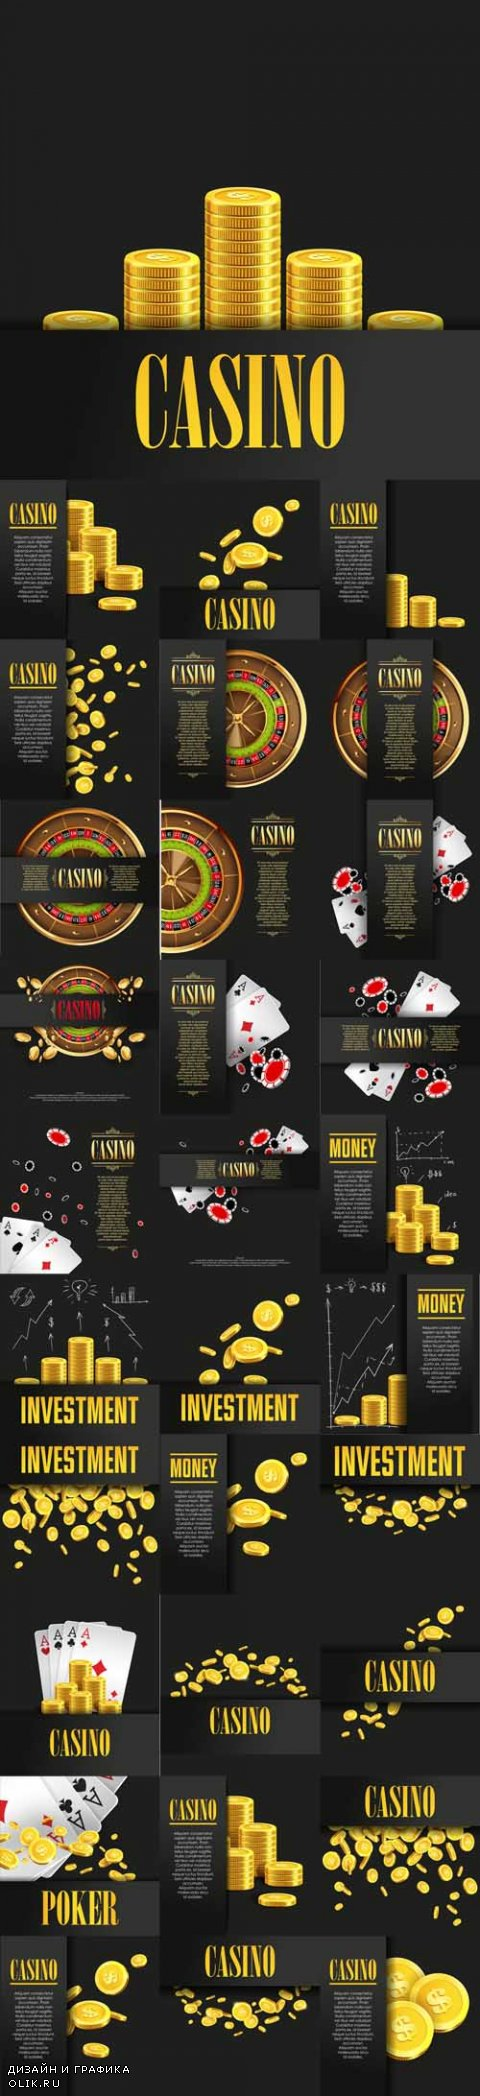 Vector Casino Poster Backgrounds or Flyer with Golden Money Coins